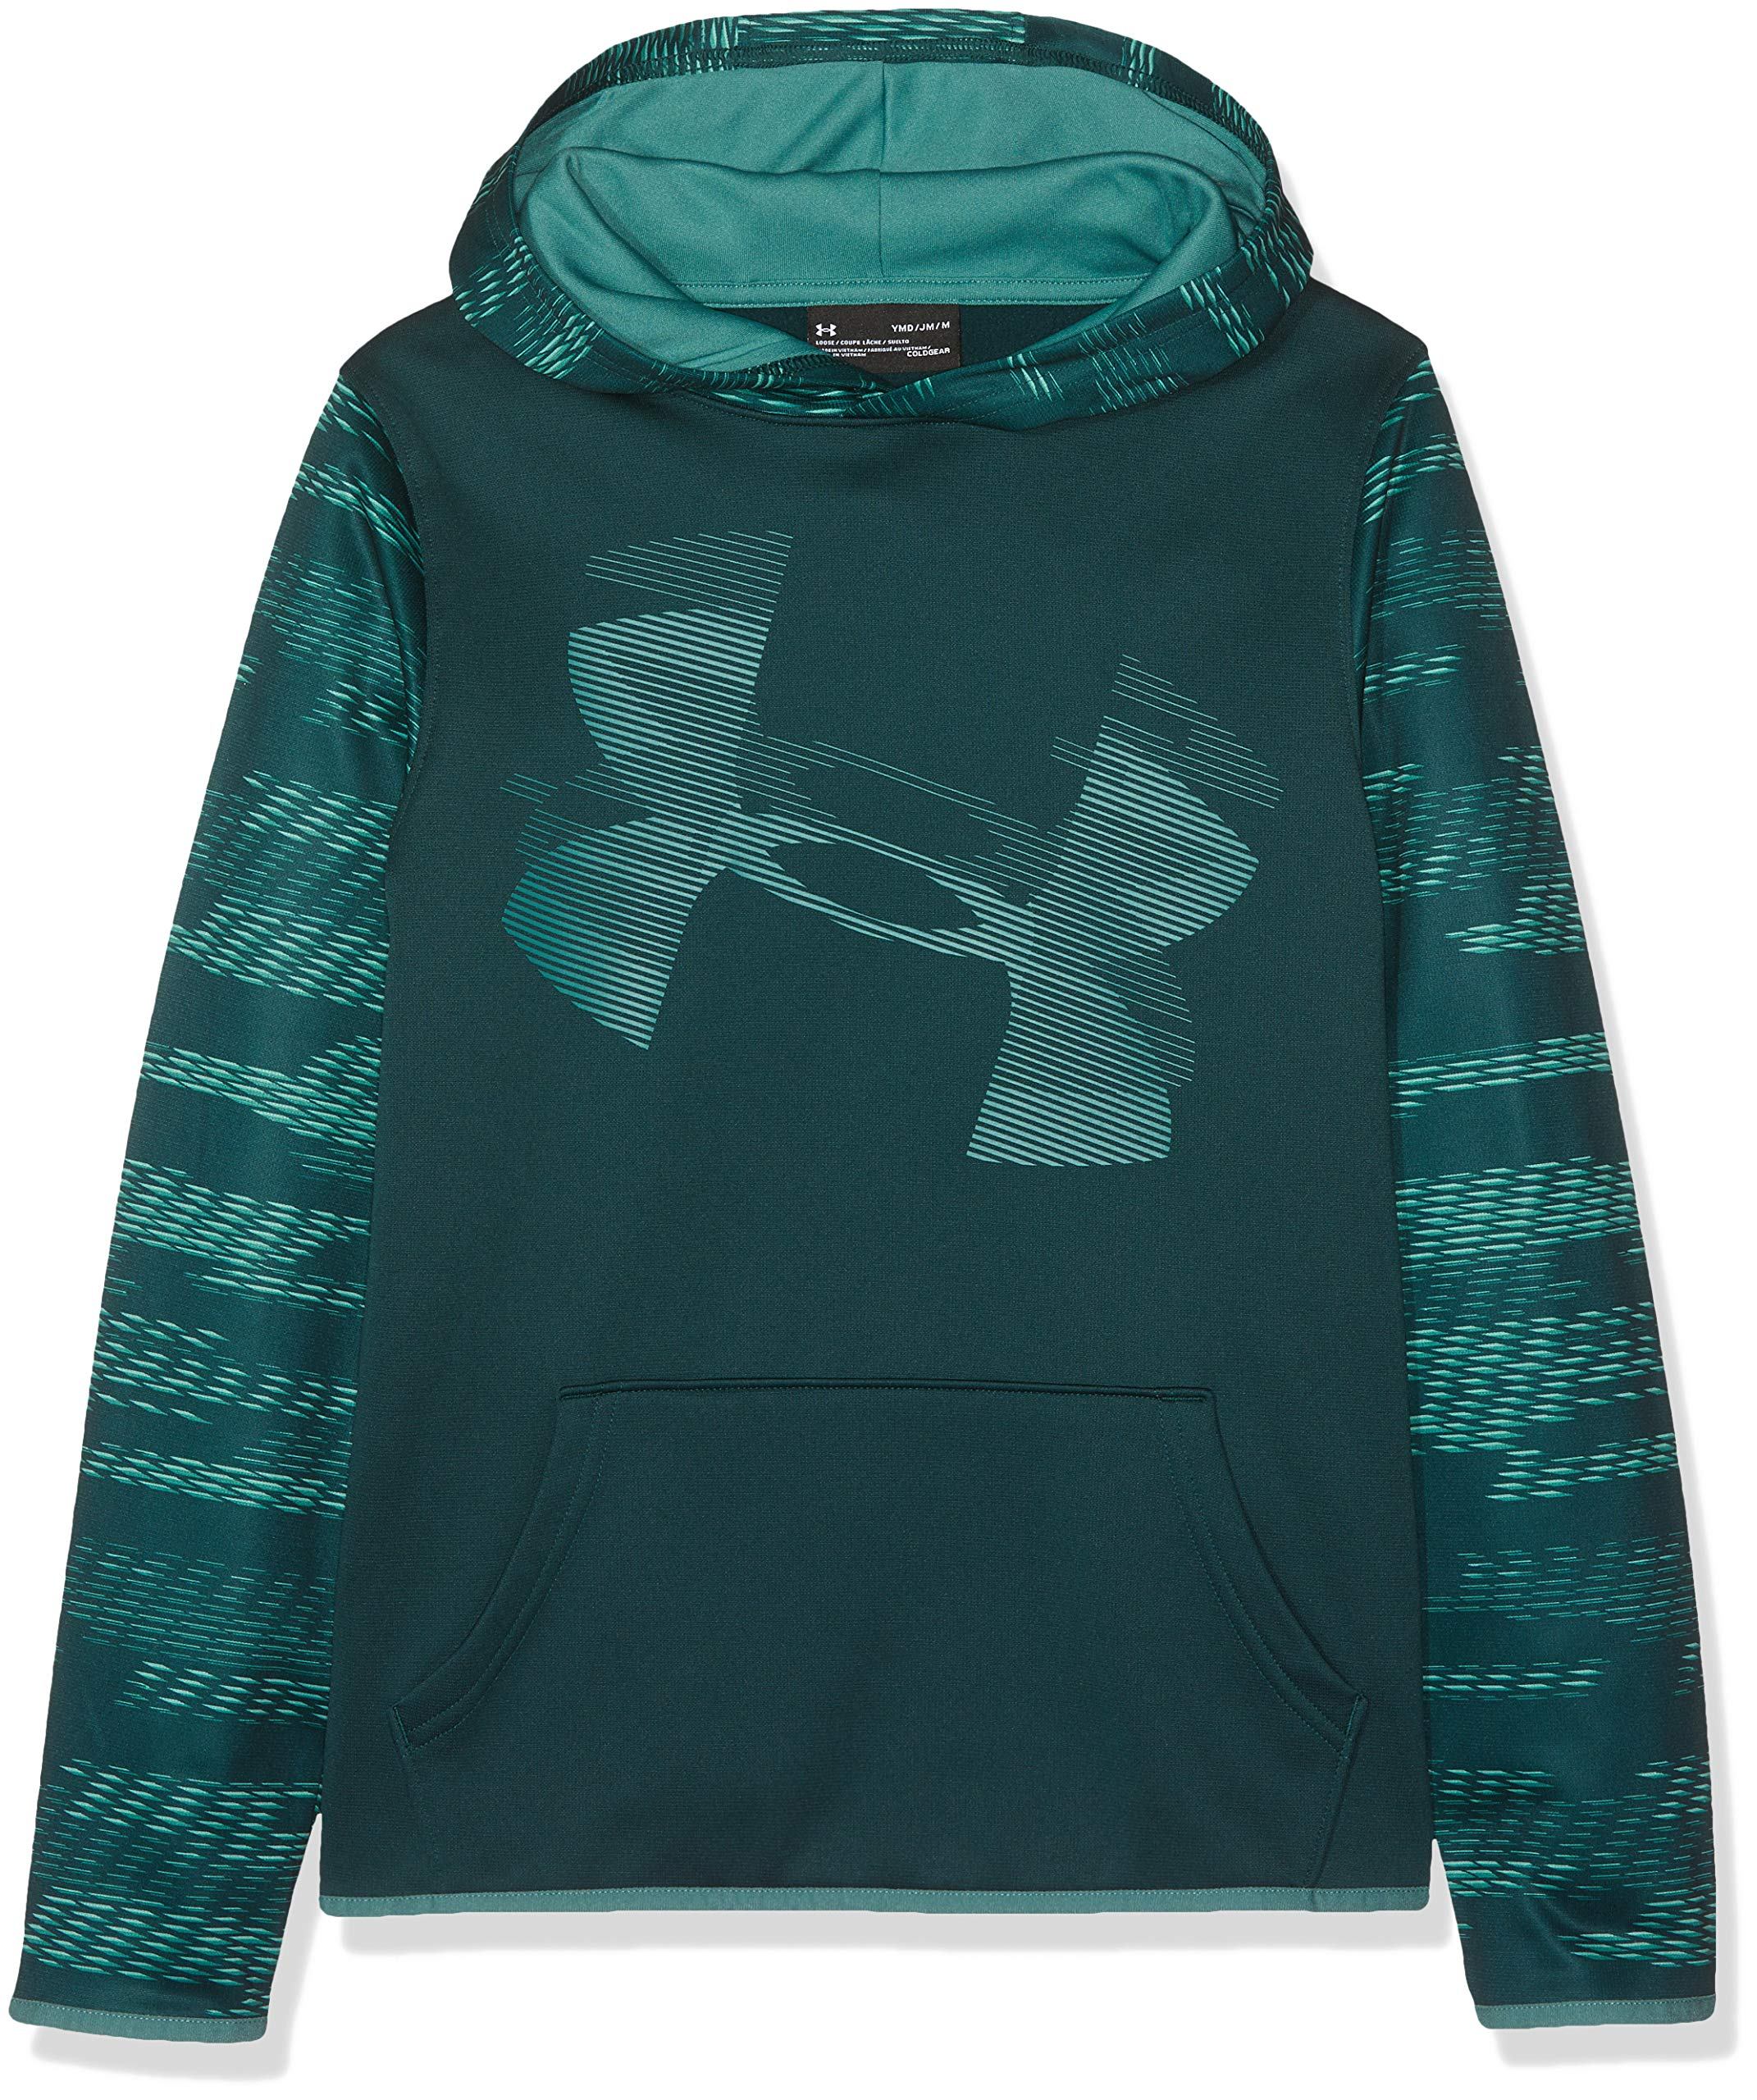 Under Armour Kids Boy's AF Highlight Sleeve Hoodie (Big Kids) Batik/Dust Large by Under Armour